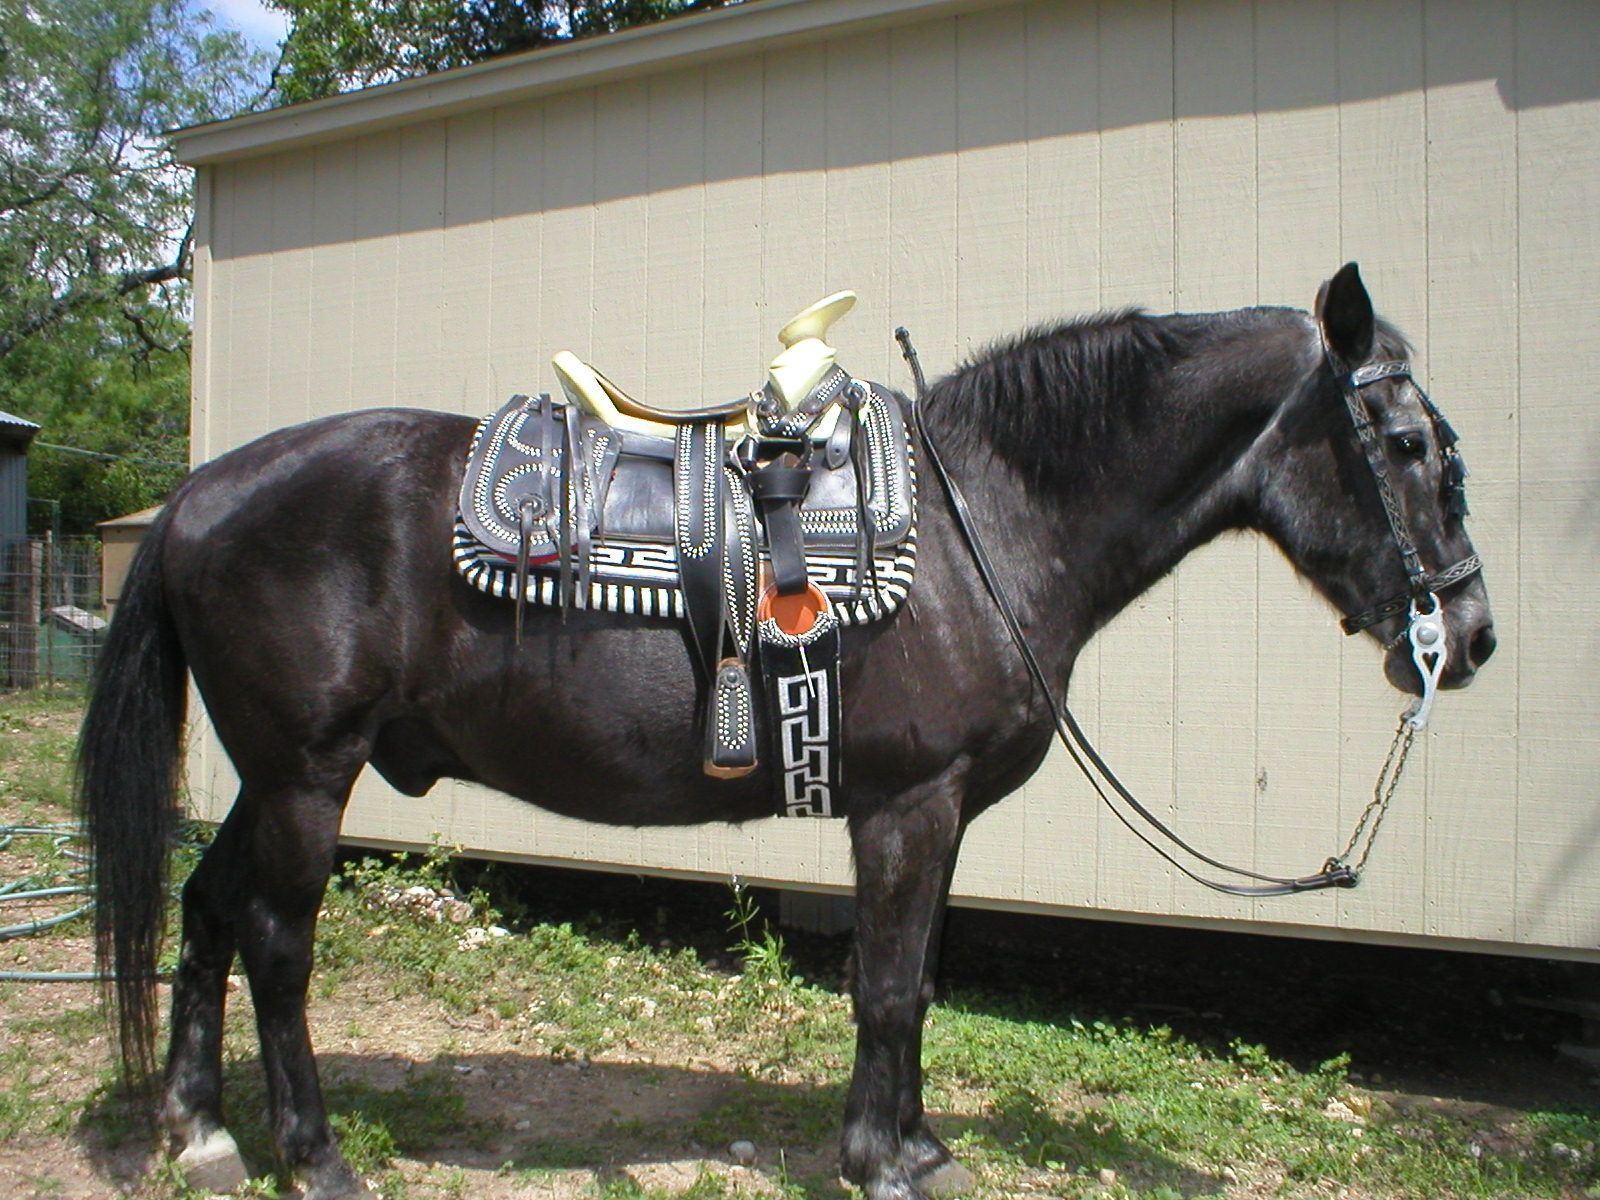 my own horse Jazz modeling a charro saddle I had for sale ...